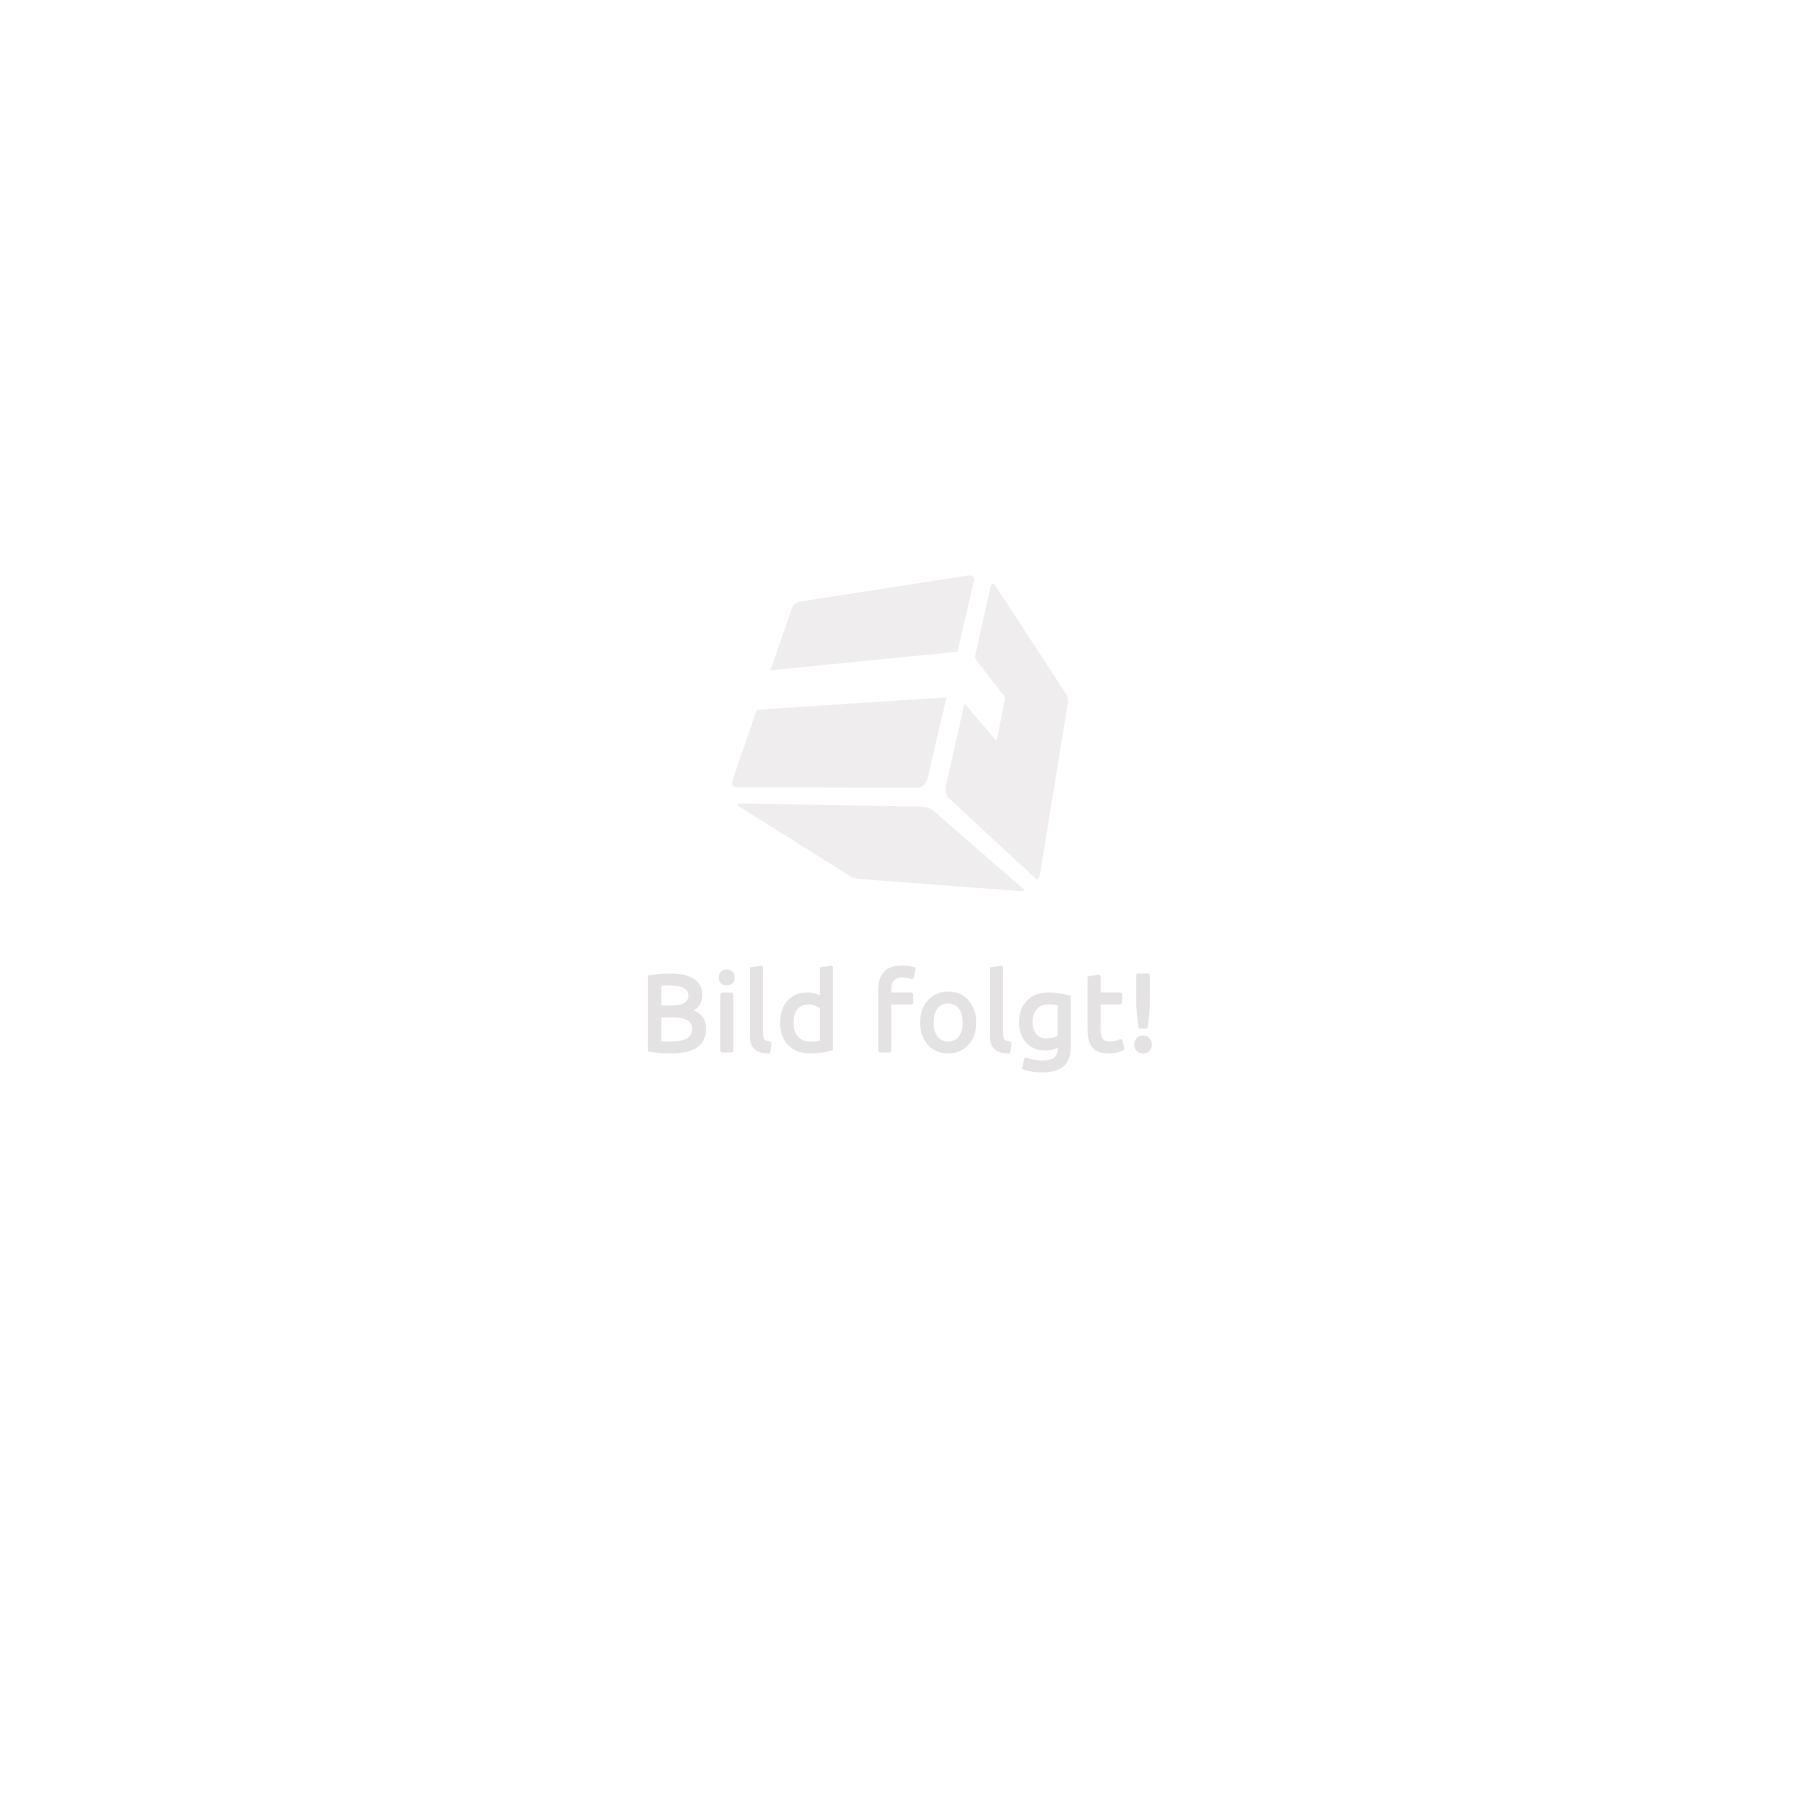 Bureau Informatique, Multimédia, 115 cm x 55 cm x 87 cm marron hêtre